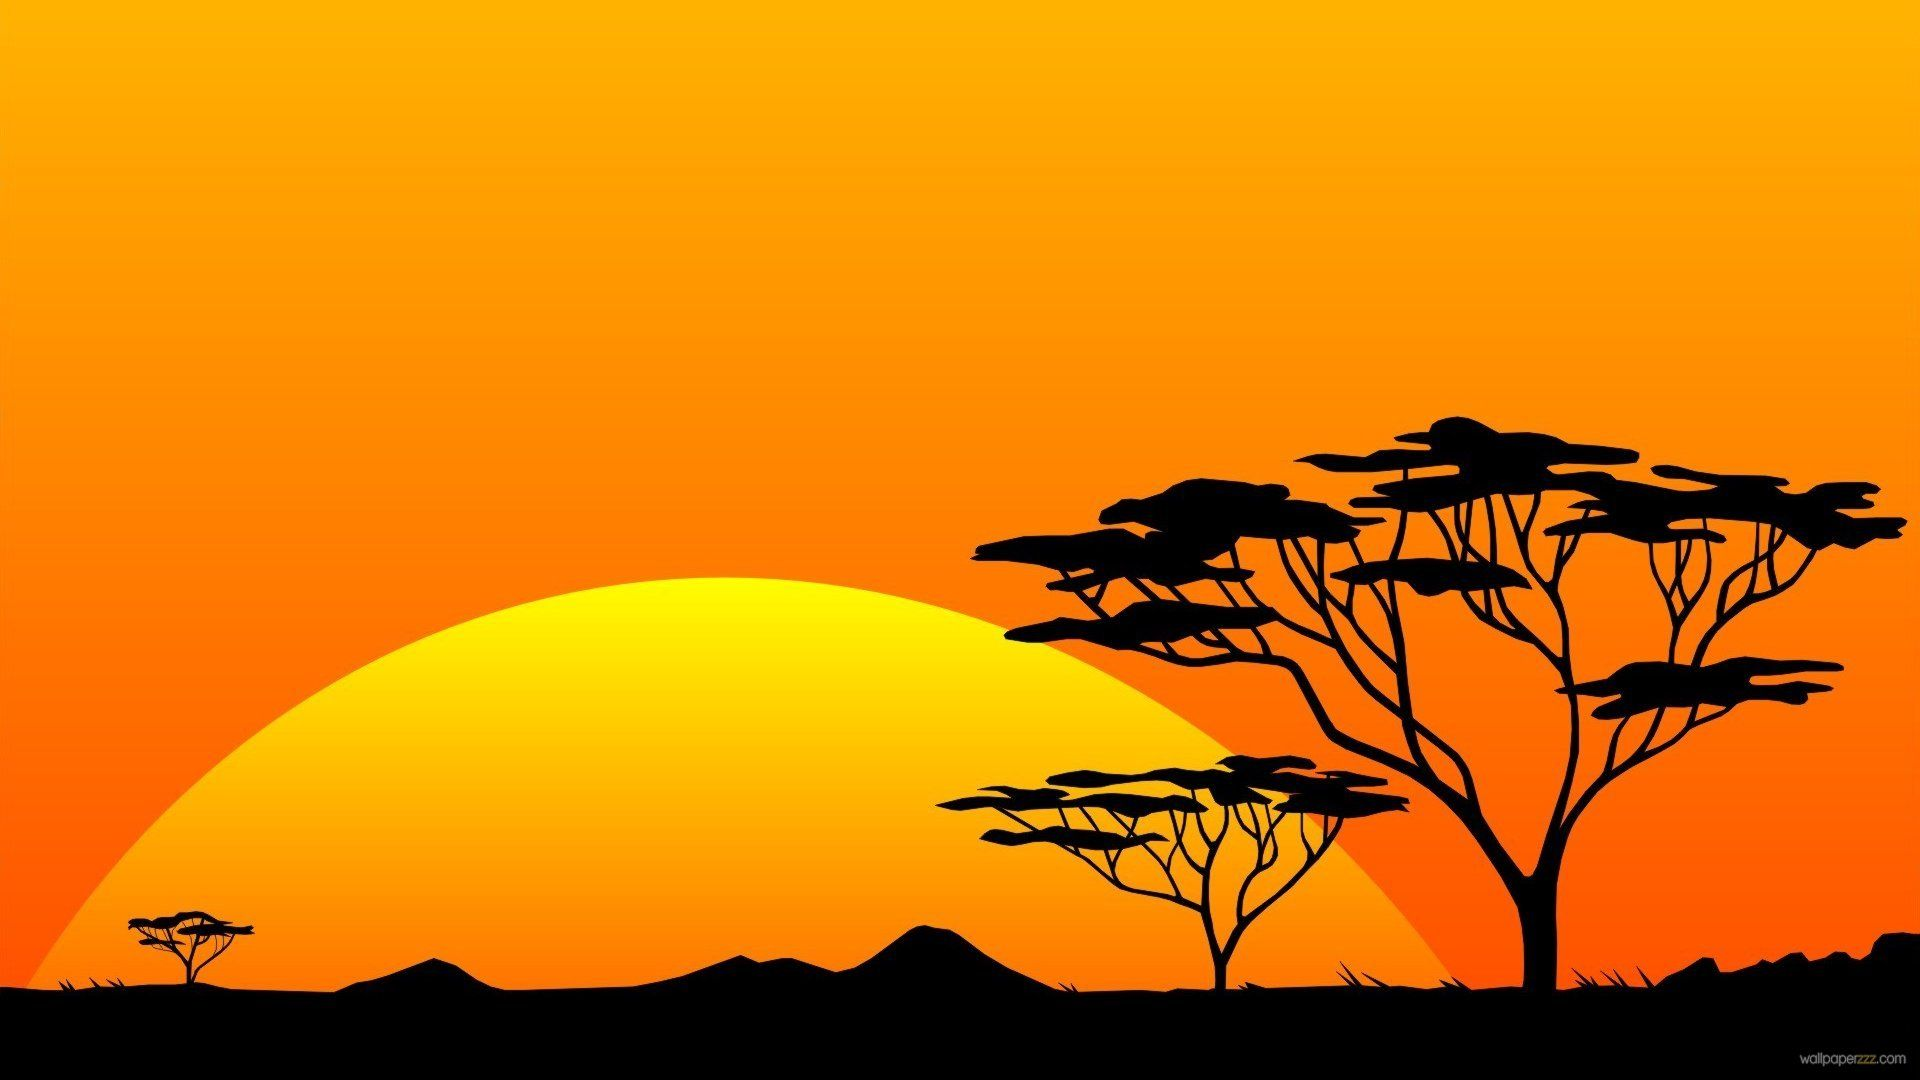 Africa savanas clipart clipart black and white stock 40+ African Savanna Sunset Wallpapers - Download at WallpaperBro clipart black and white stock